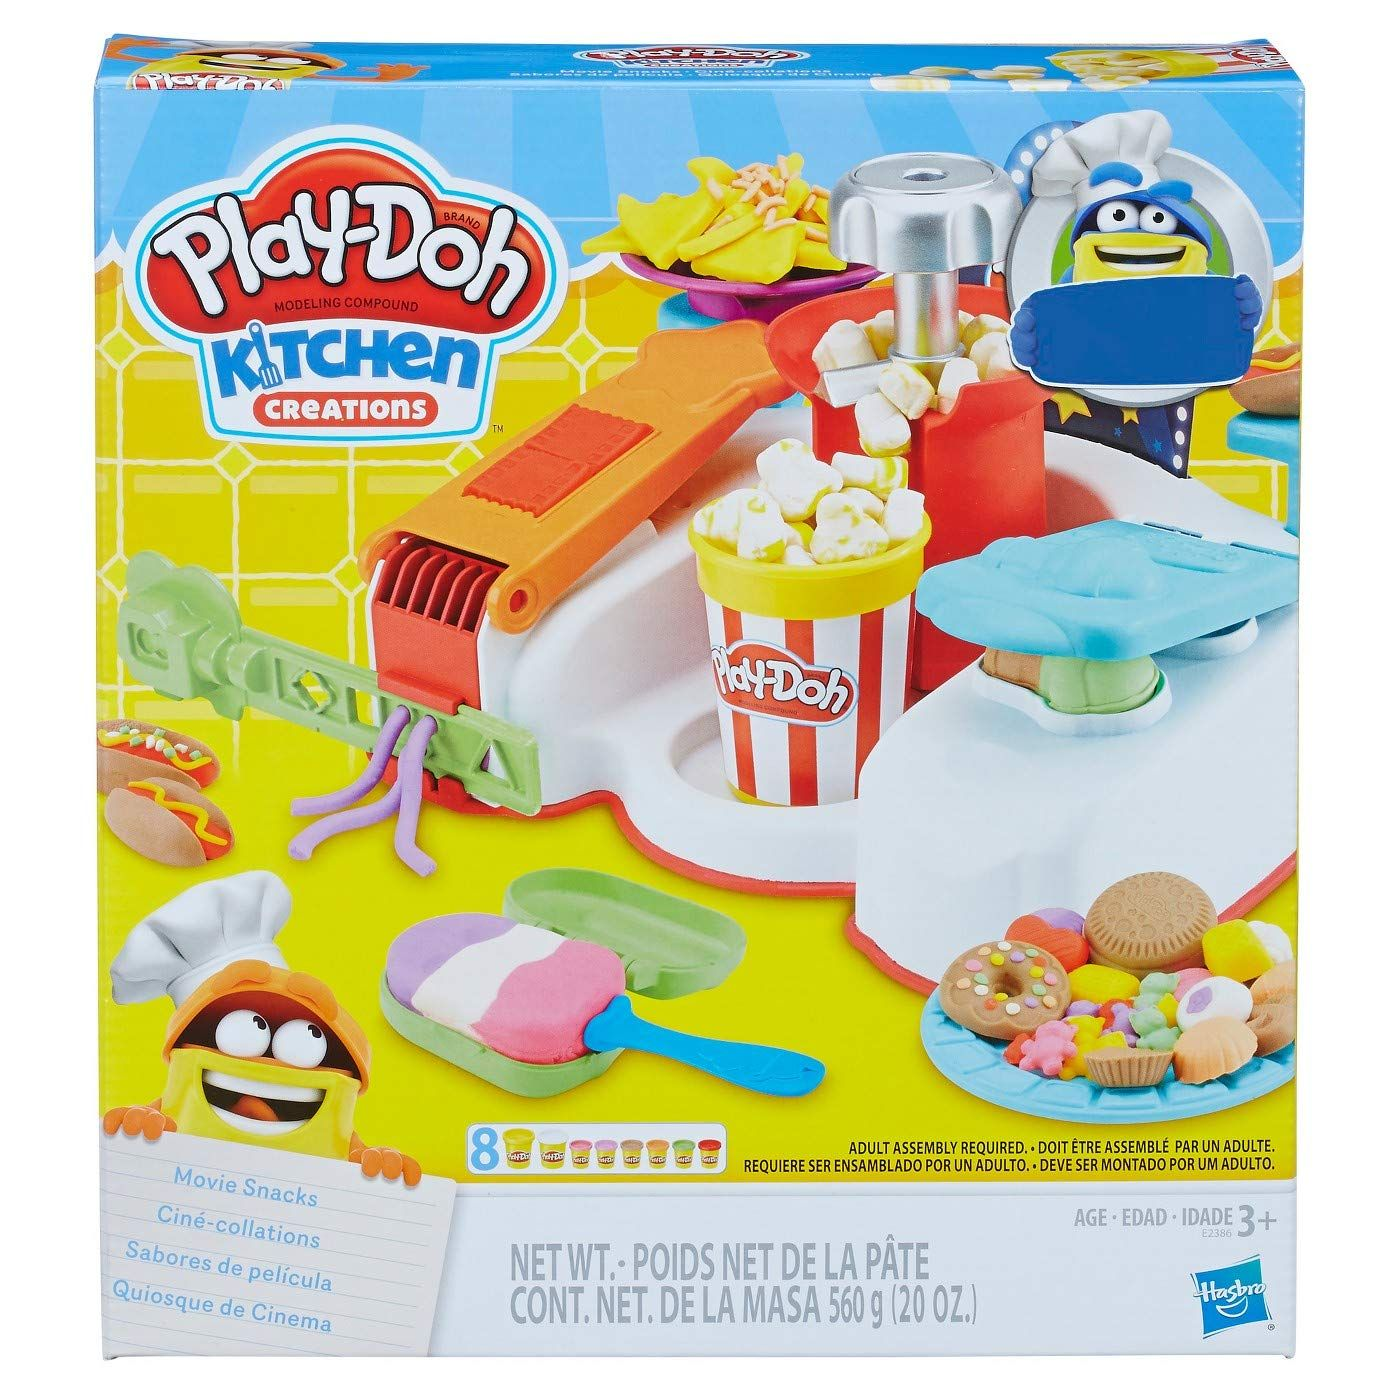 Play Doh Kitchen Creations Movie Snacks Play Doh Kitchen Play Doh Snack Set